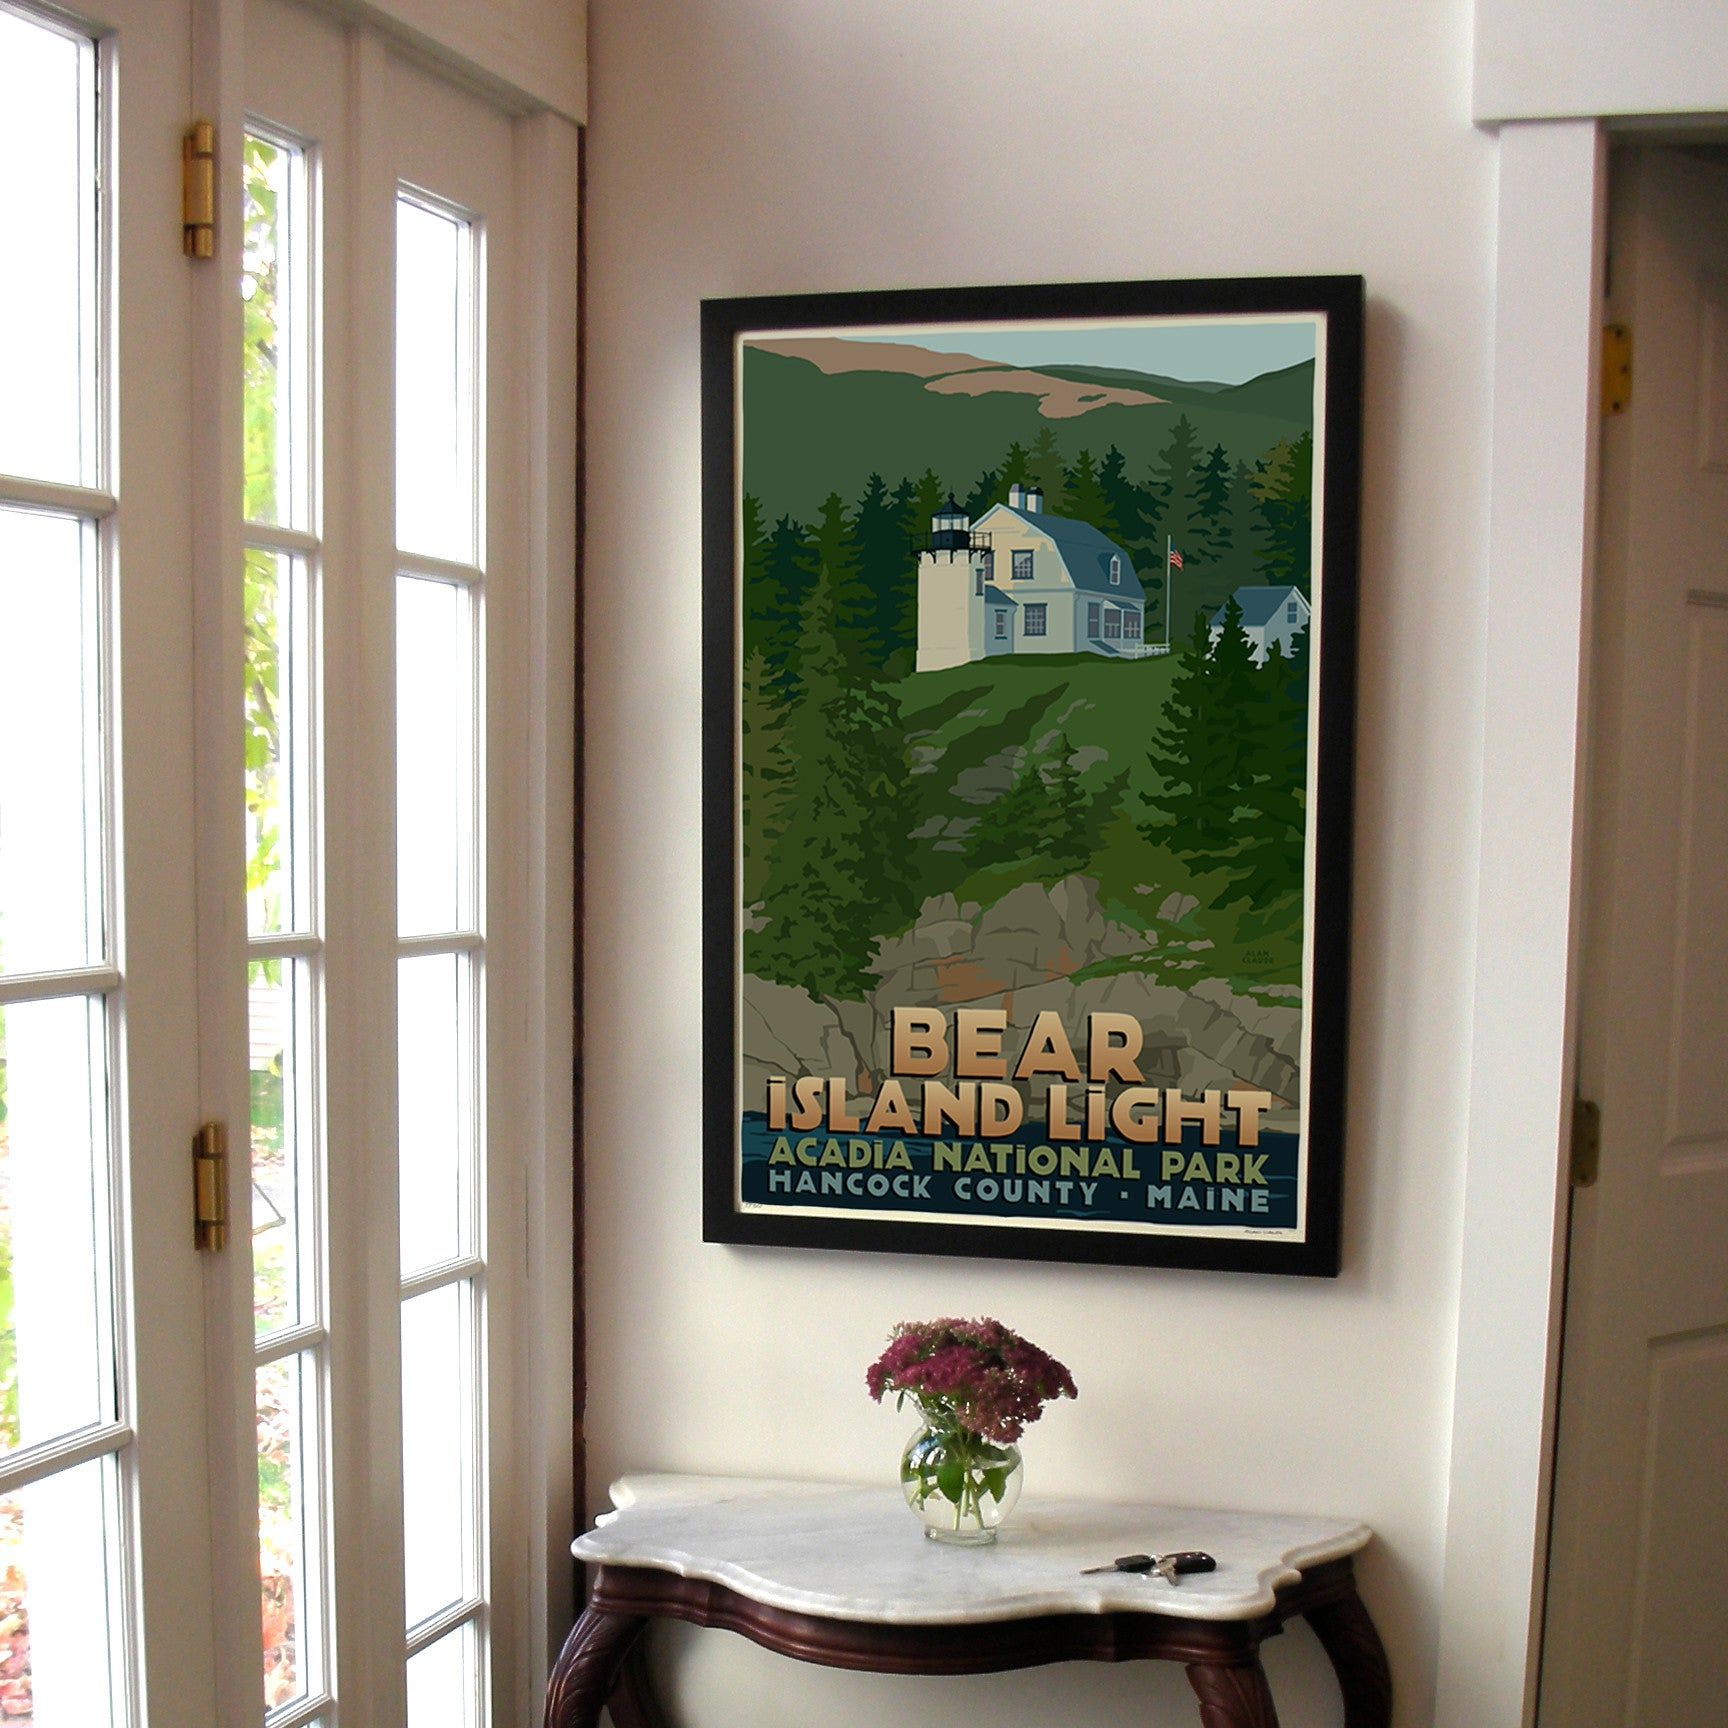 "Bear Island Light Art Print 24"" x 36"" Framed Travel Poster - Maine"